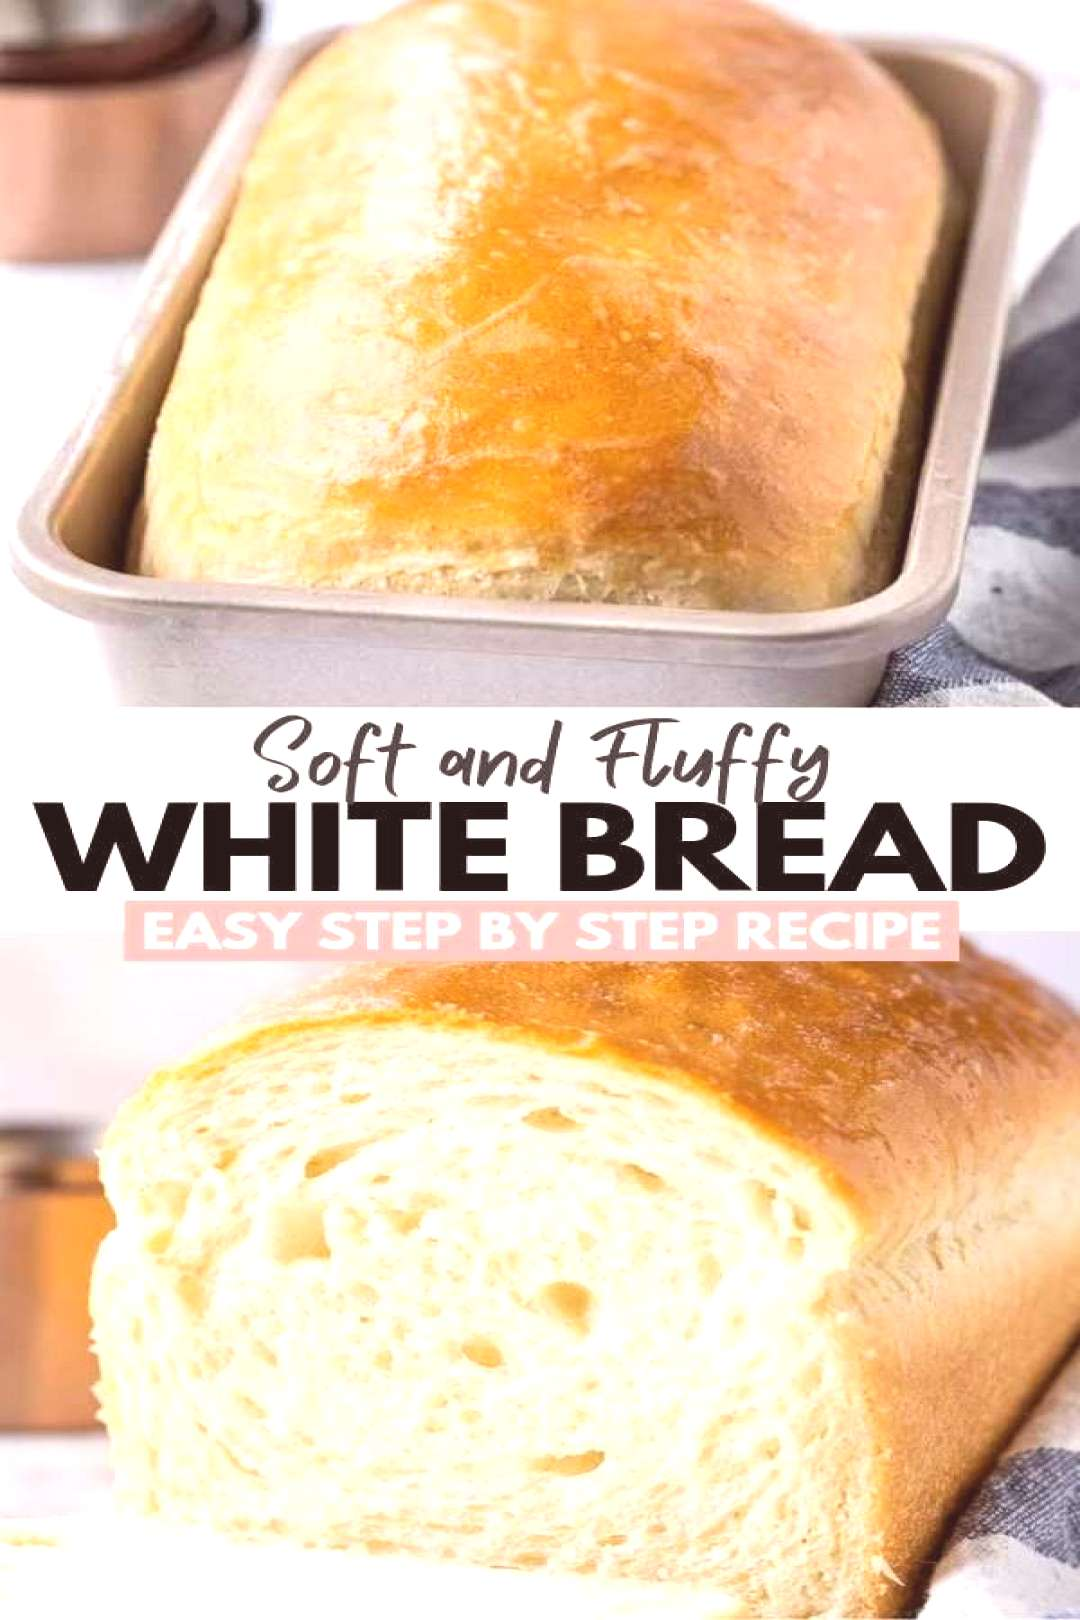 This White Bread recipe is a classic youll want to keep on hand. So light, fluffy and incredibly s